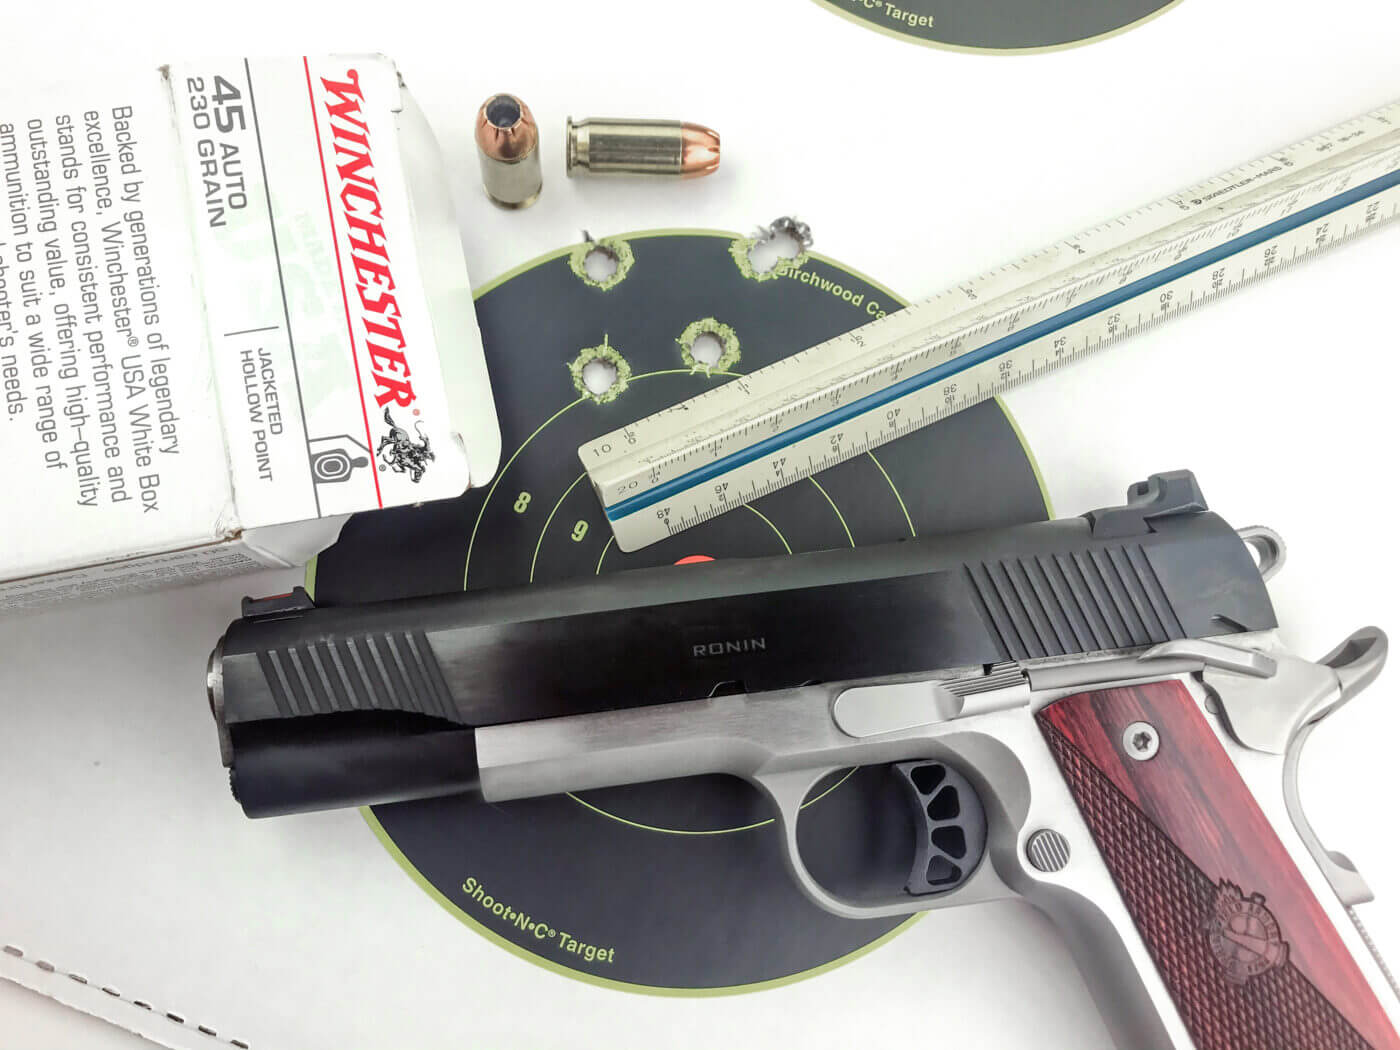 Ronin pistol with ammo and target